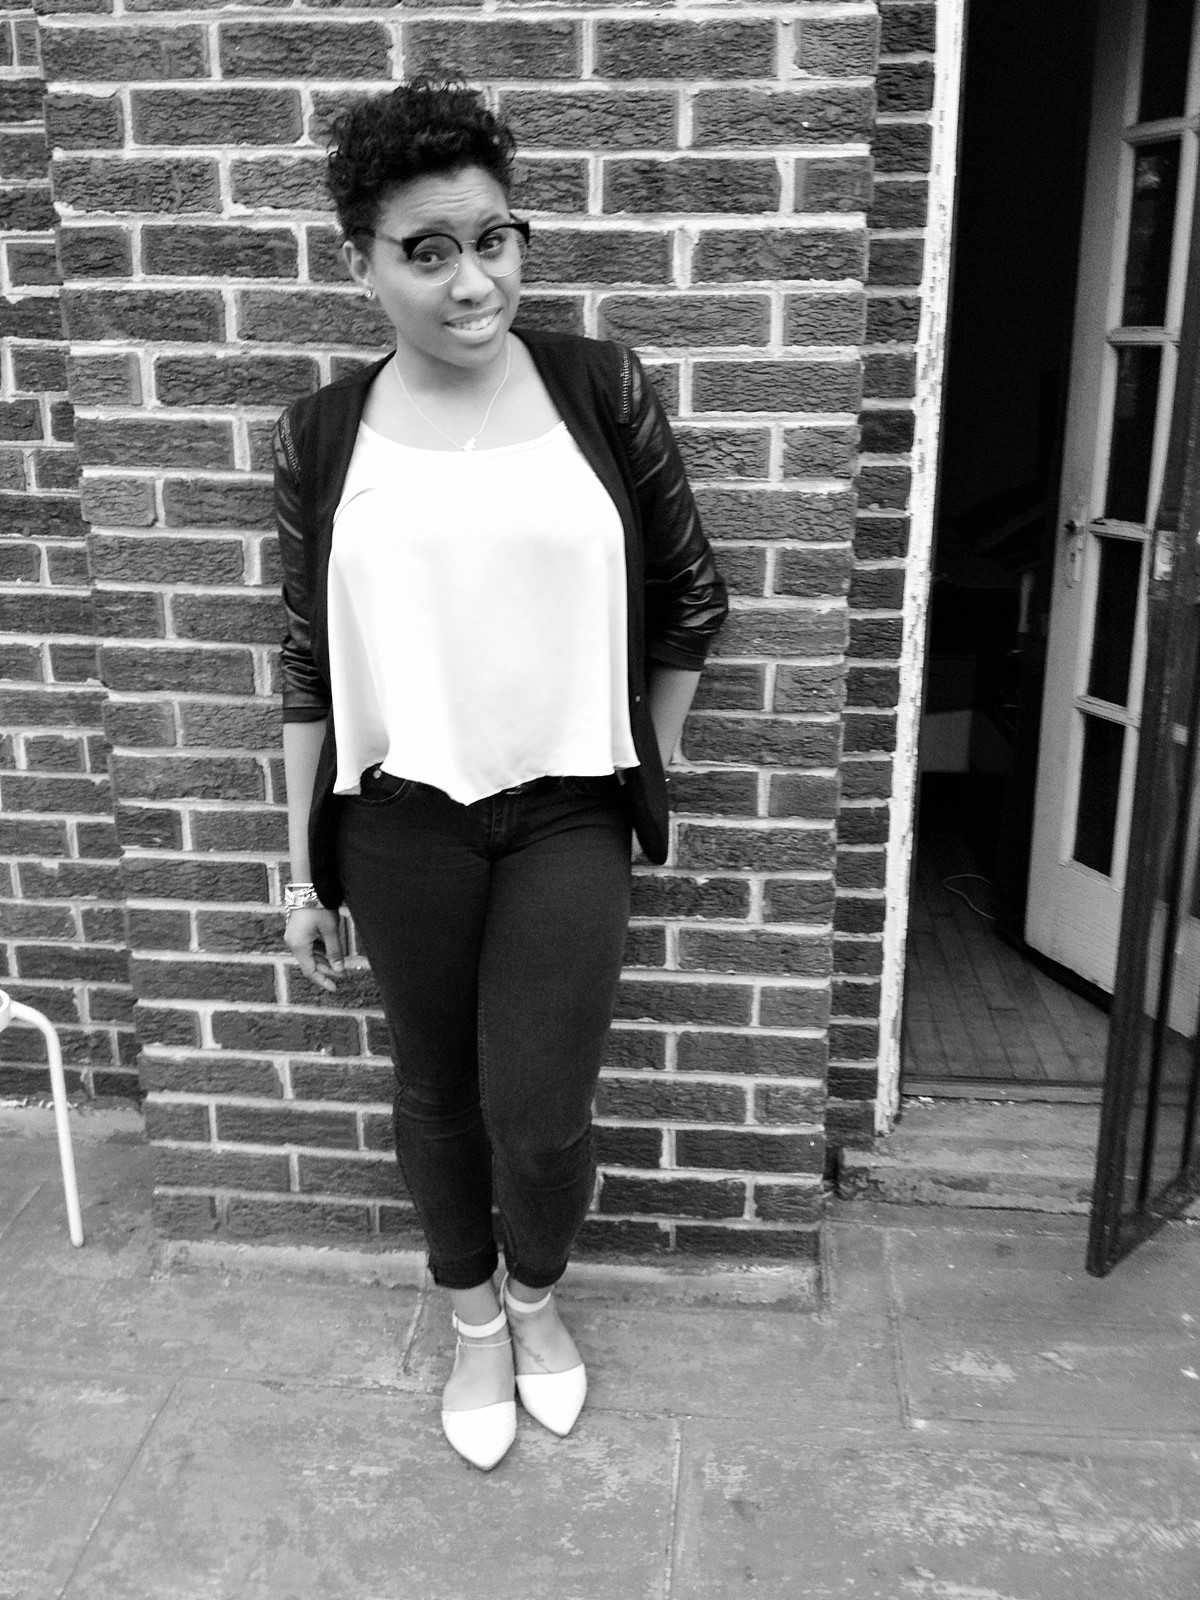 Photo of Danyelle Brandon, a young African American woman with glasses & short hair, standing next to brick building.